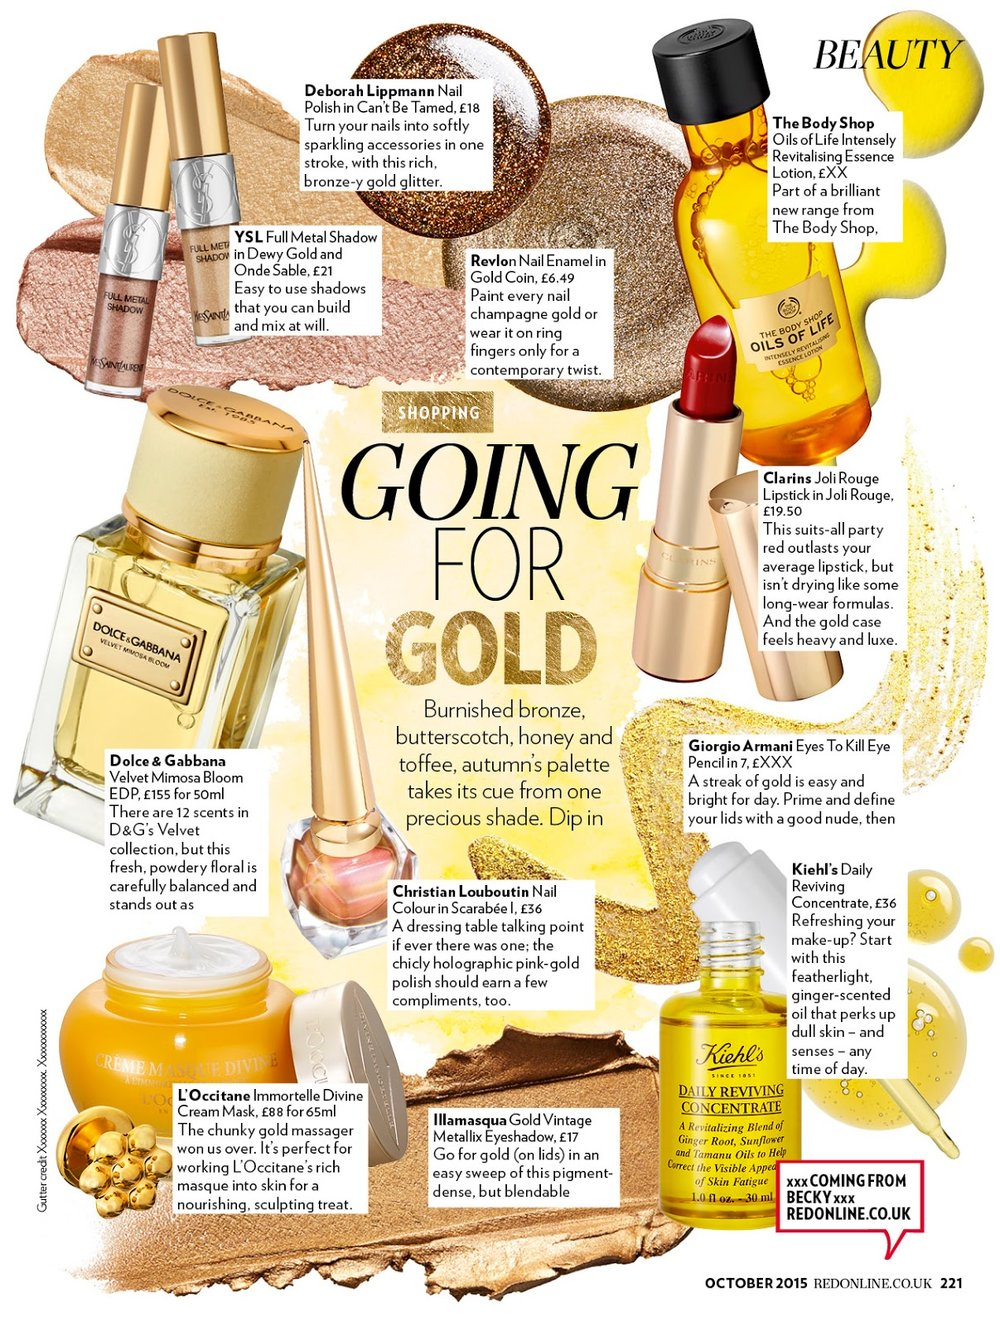 Zuki_Turner_Graphic design_beauty shopping gold.jpg